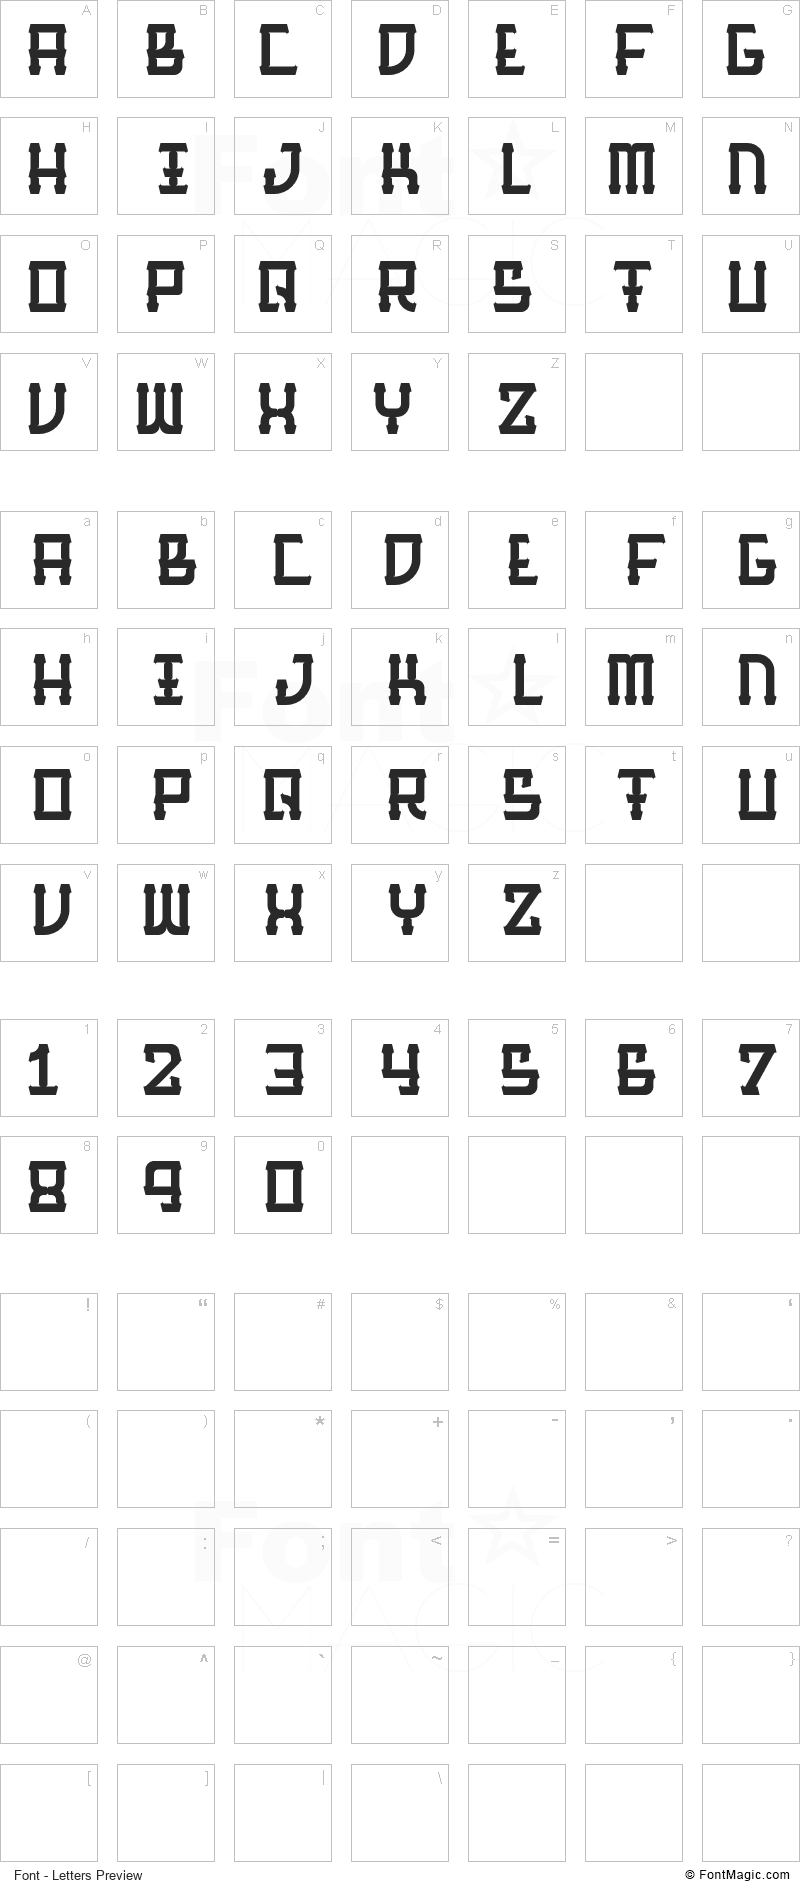 Barque Font - All Latters Preview Chart